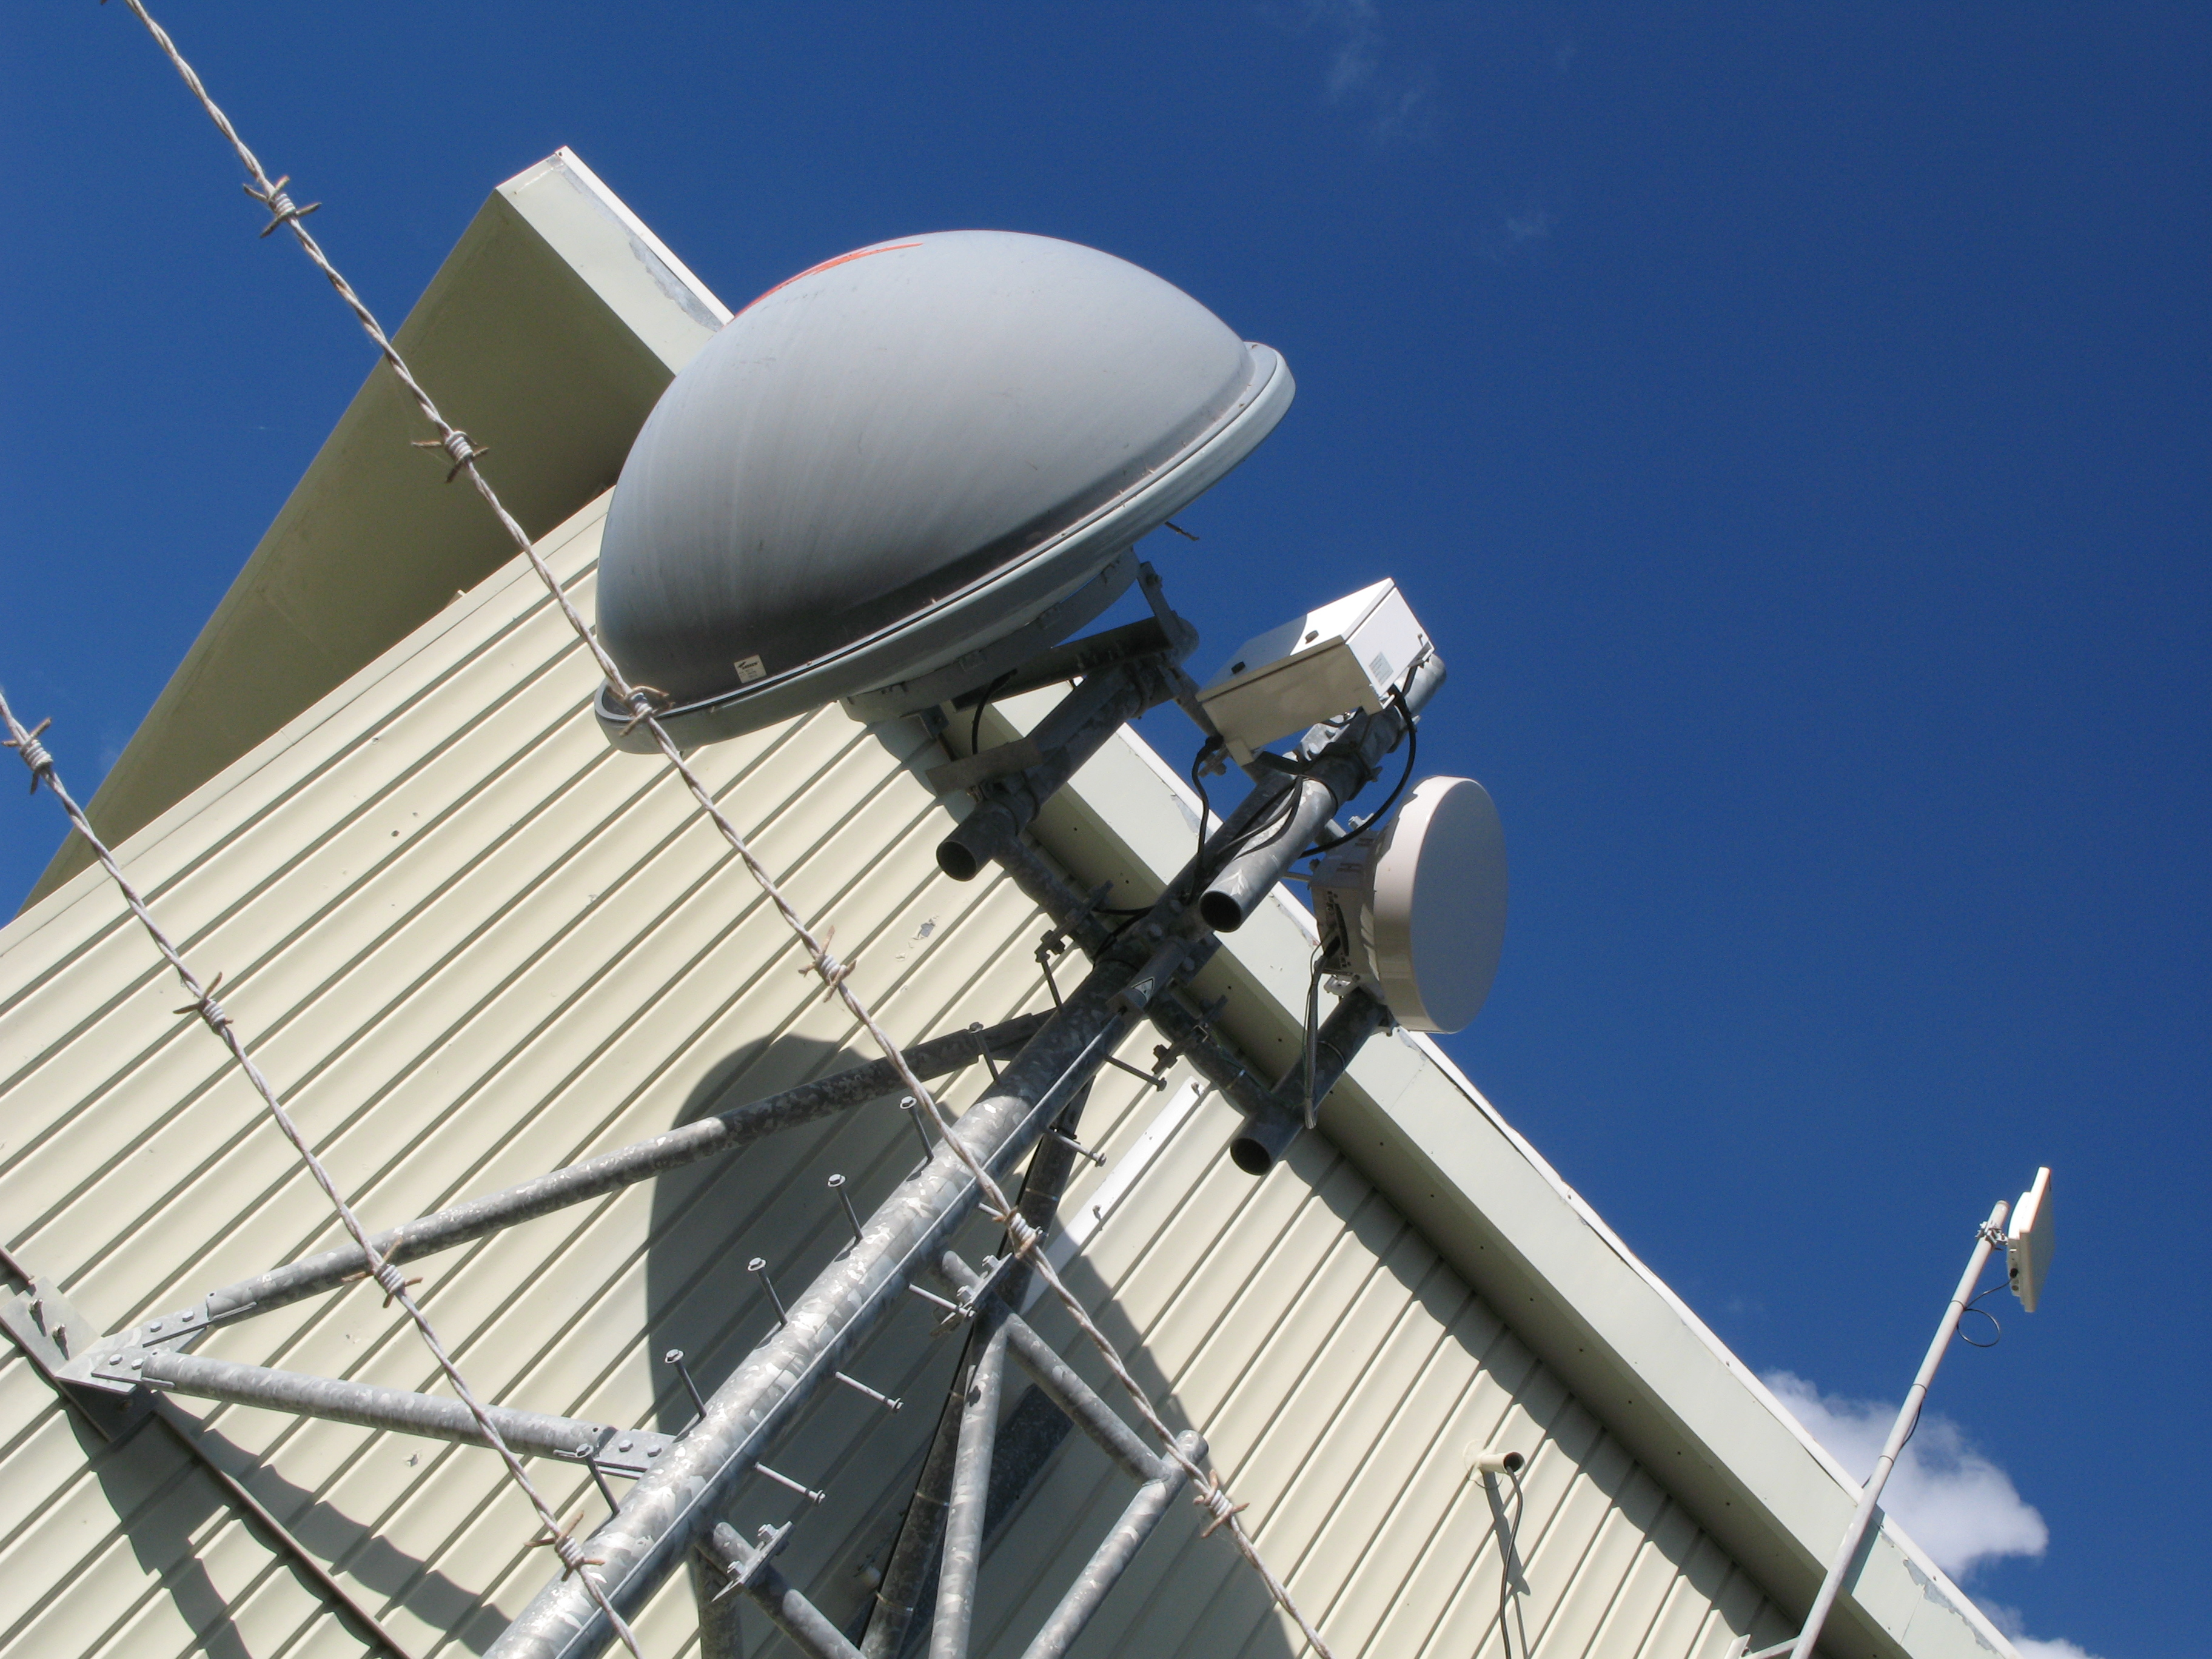 microwave antenna dish mounted on a mobile phone base station